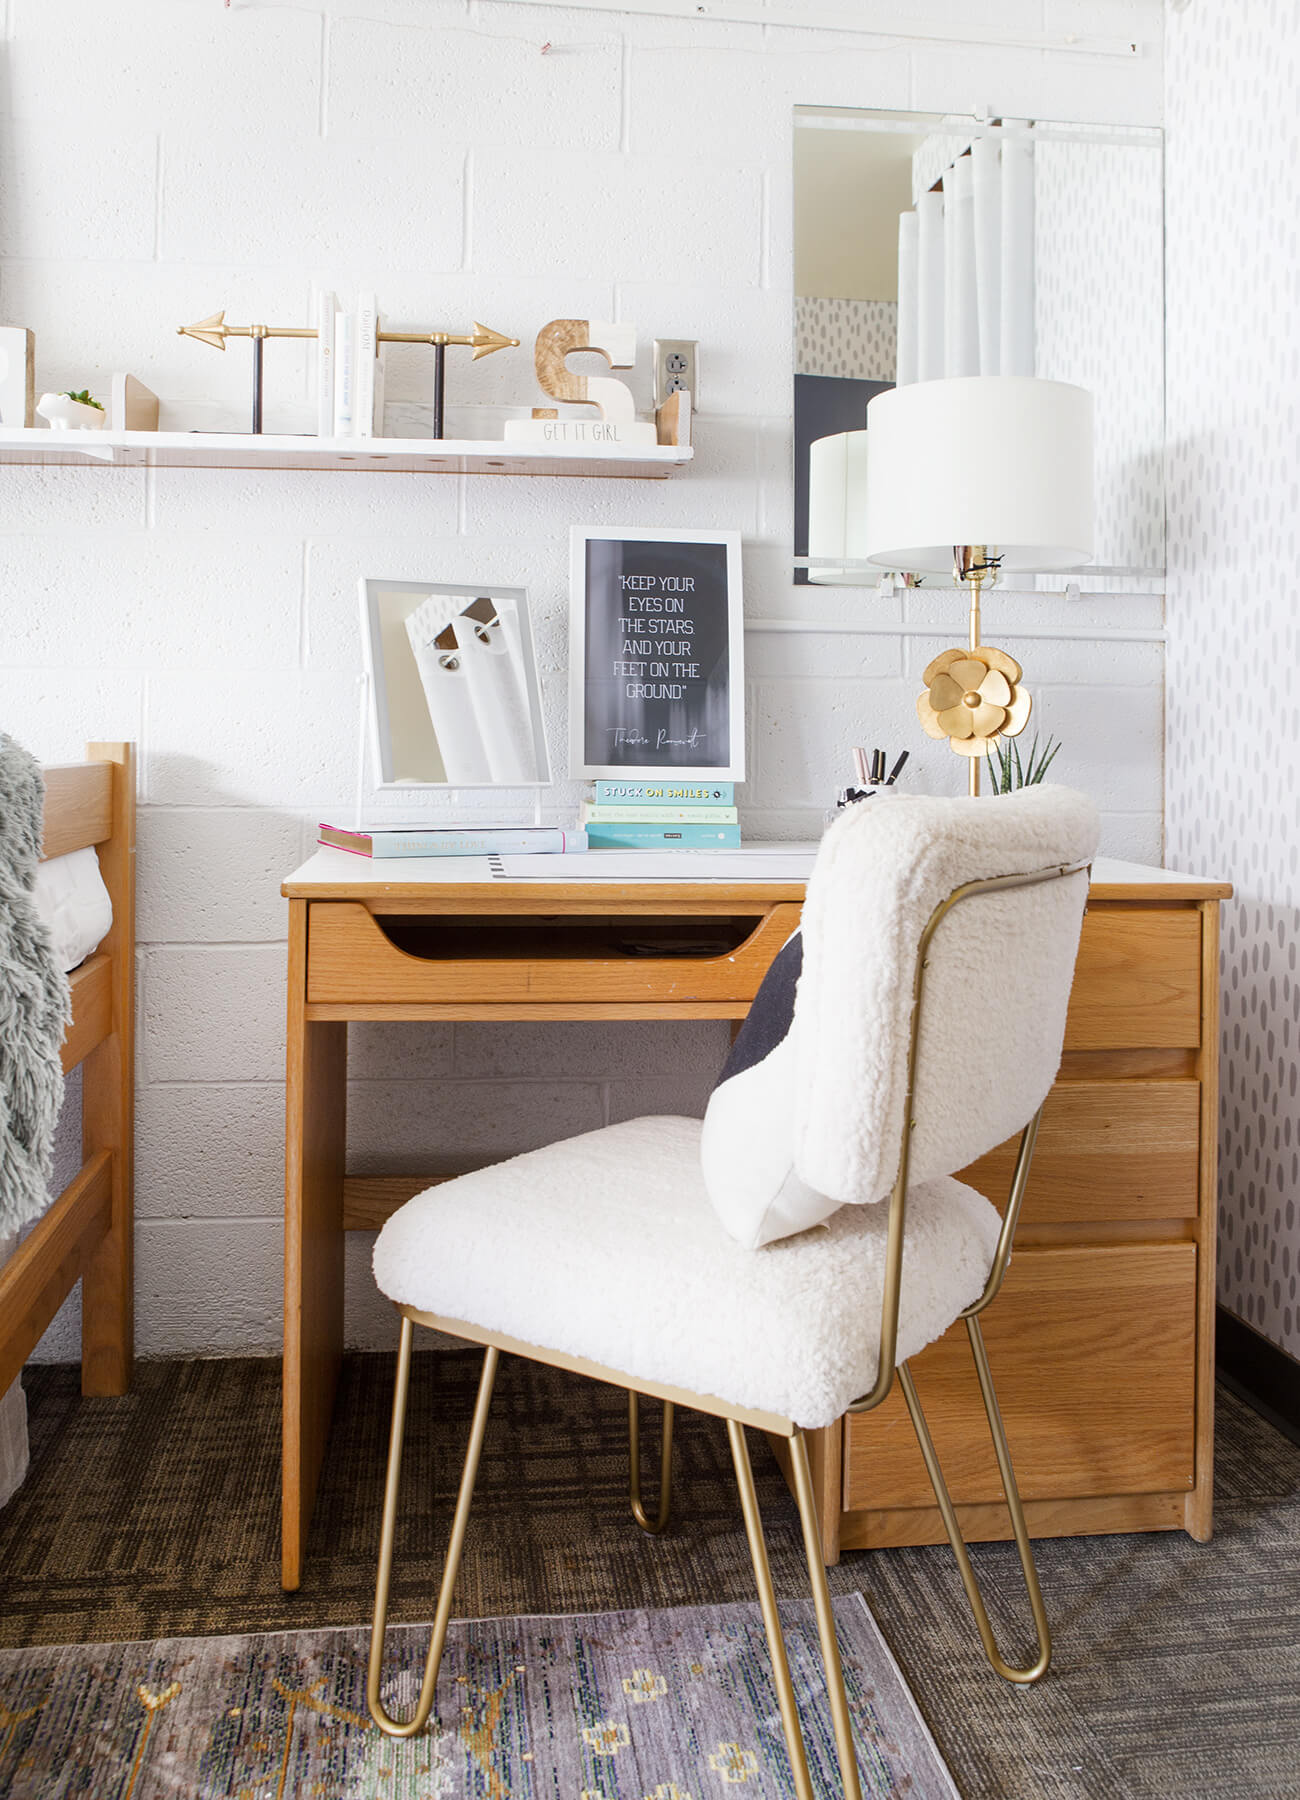 Dorm room work space, desk area with wood furniture, white and gold interior decor and desk accessories